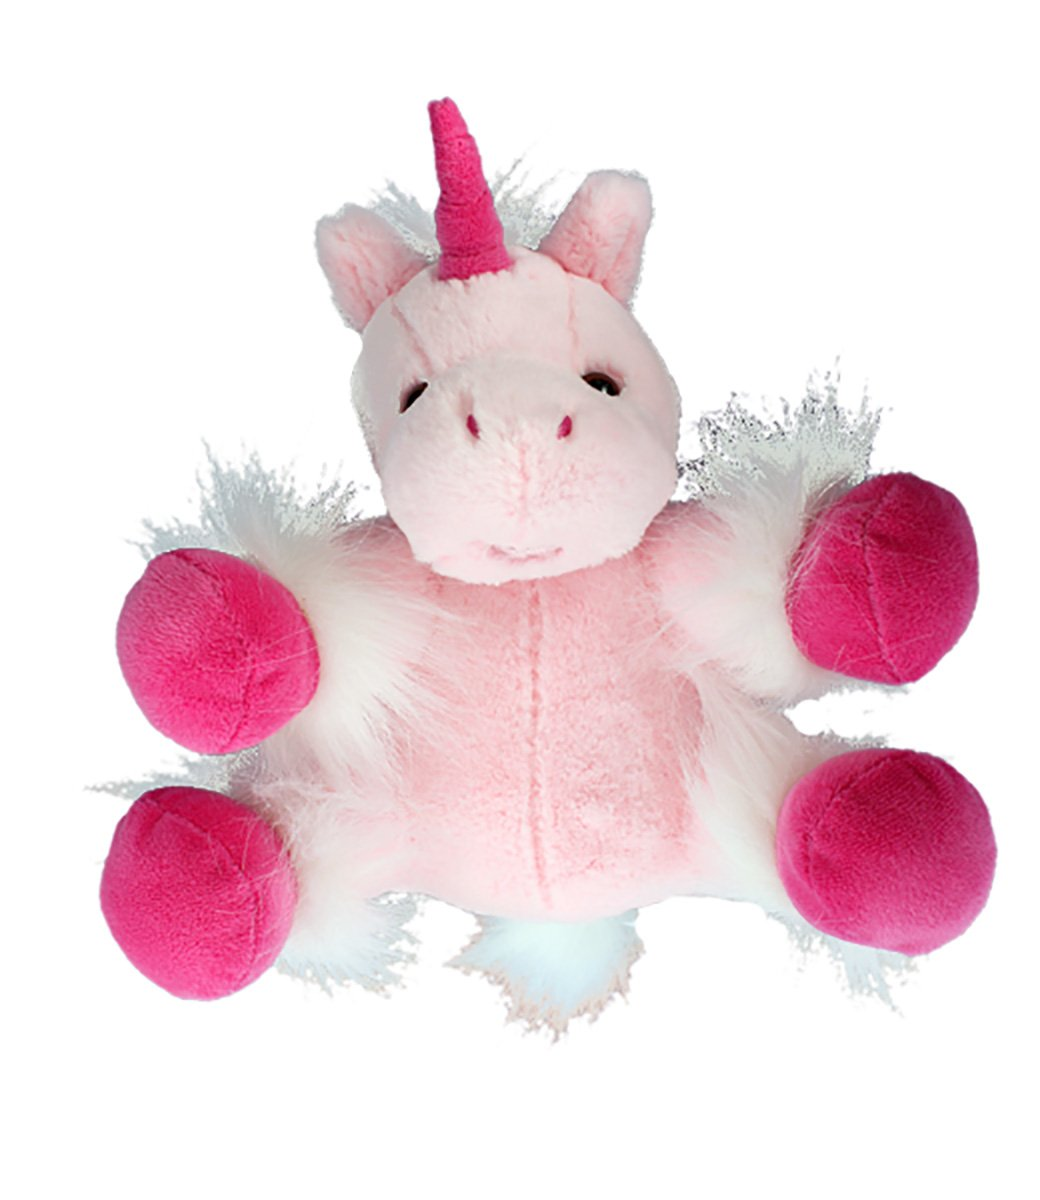 Recordable Stuffed 8 White Unicorn with 10 Second Digital Recorder